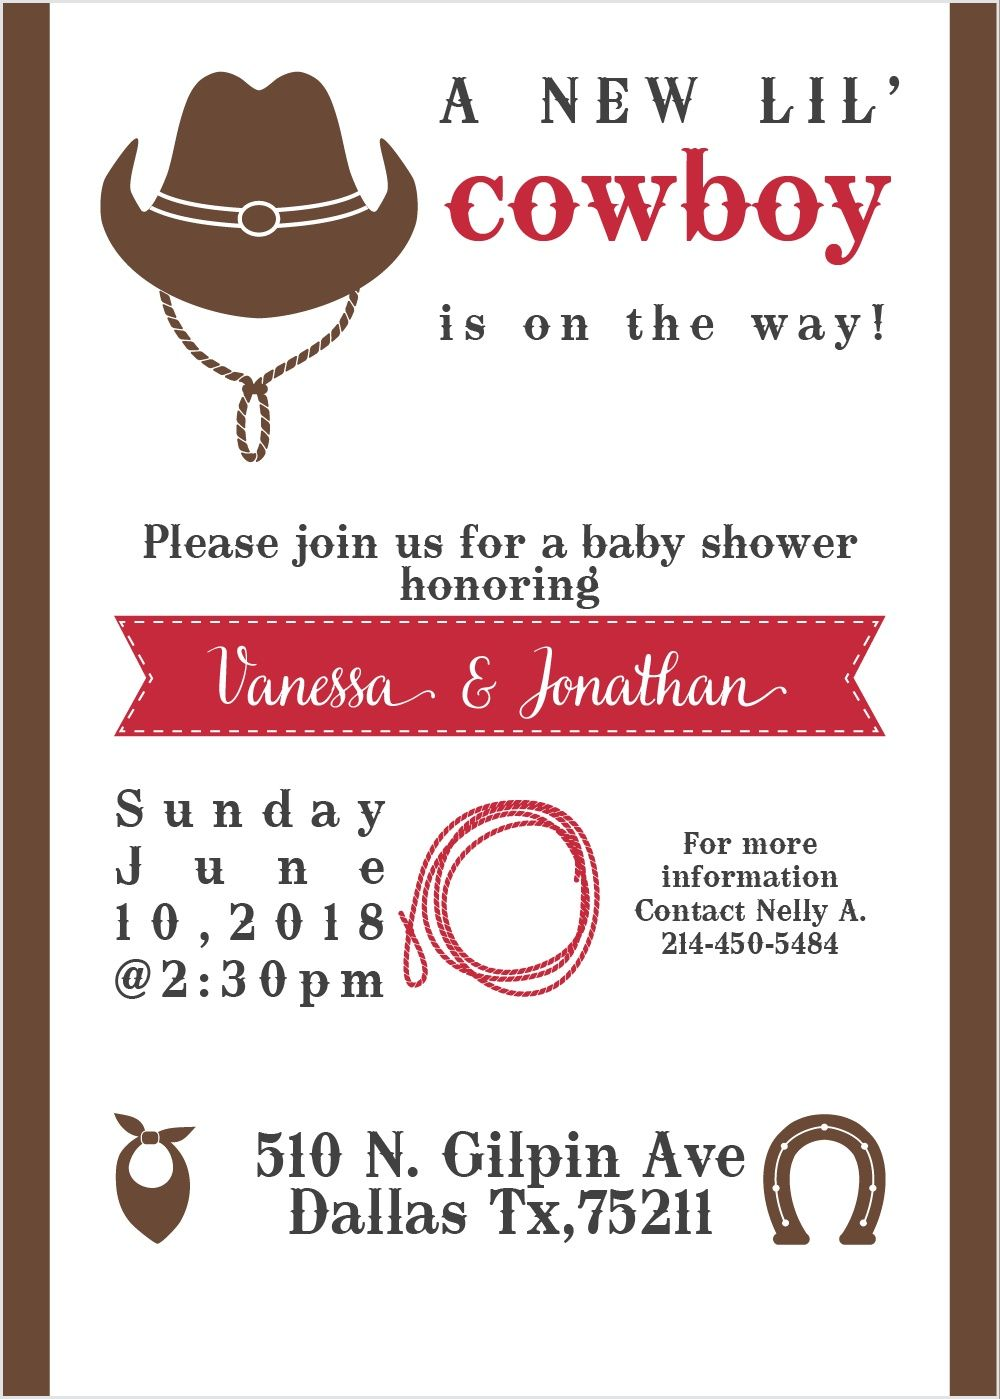 New Cowboy Baby Shower Invitations | Pinterest | Cowboy baby shower ...